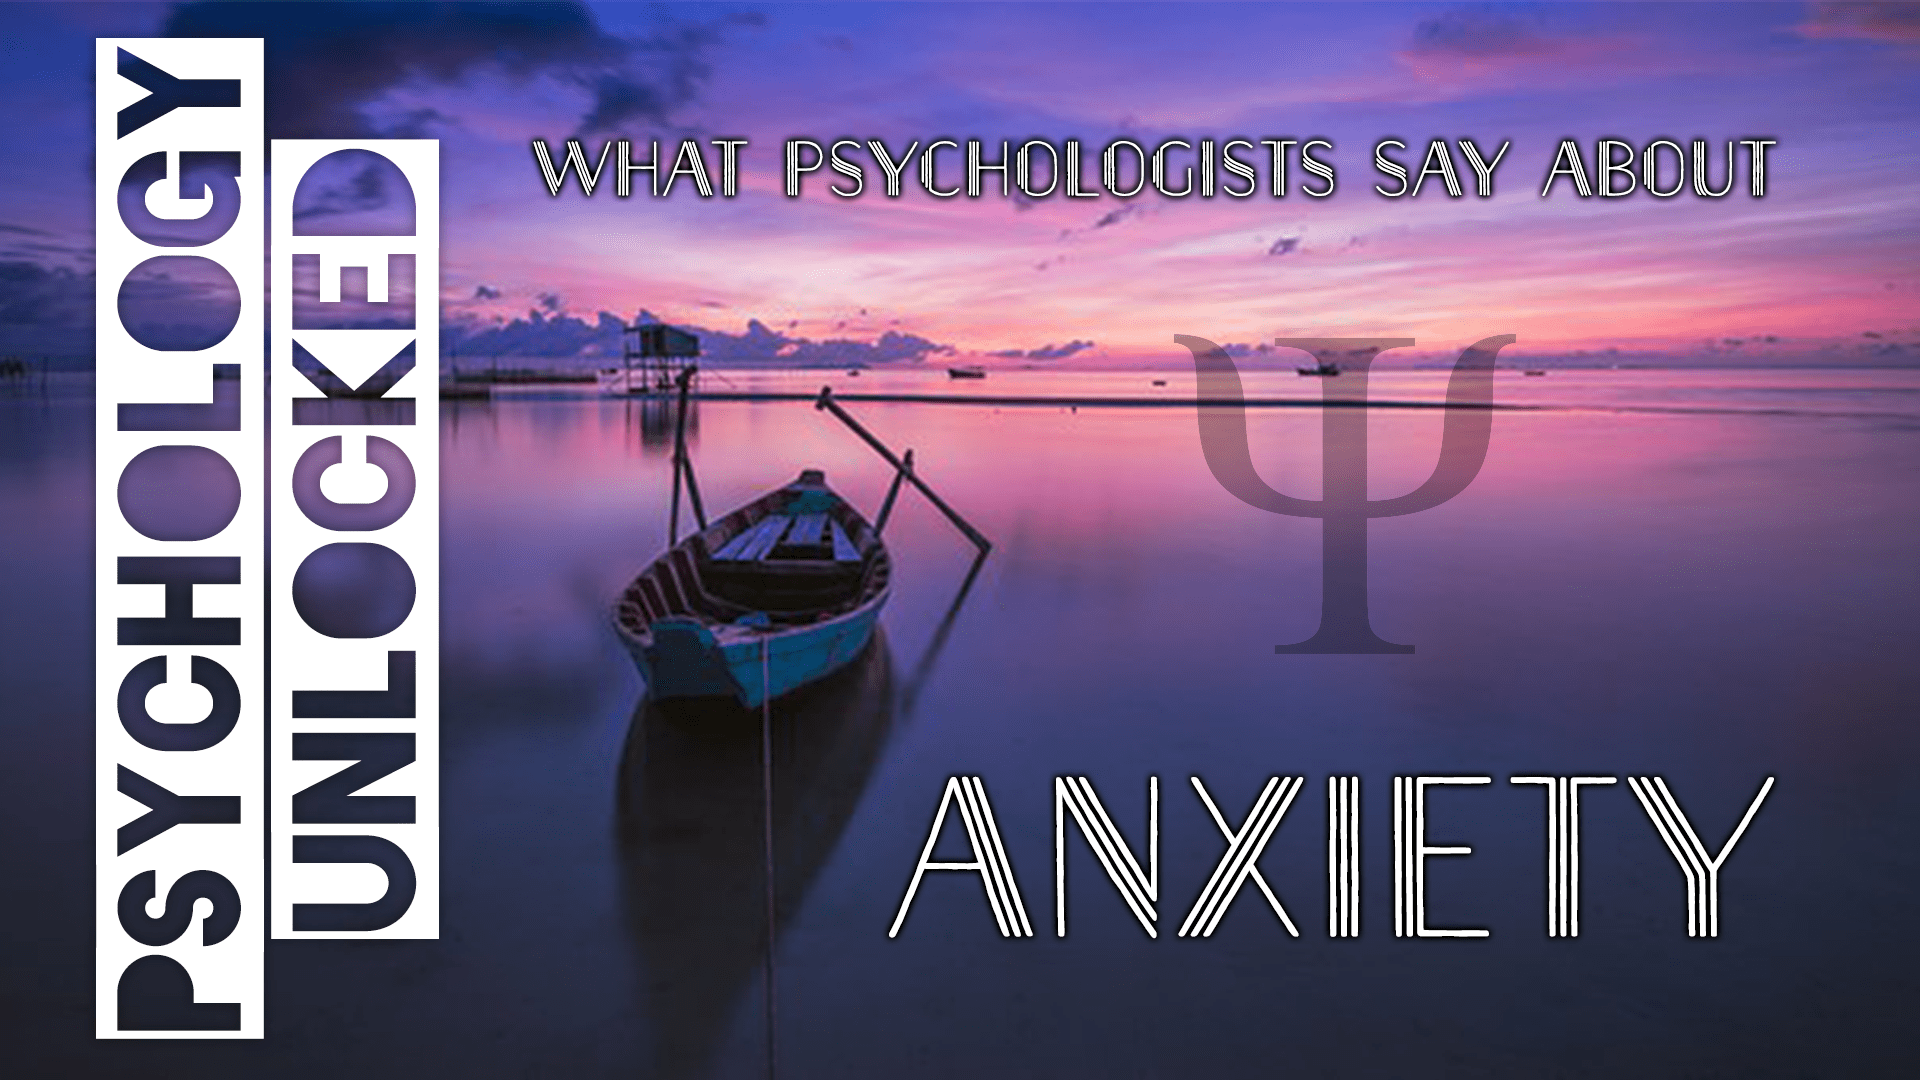 What Psychologists Say About Anxiety - 7 Quotes